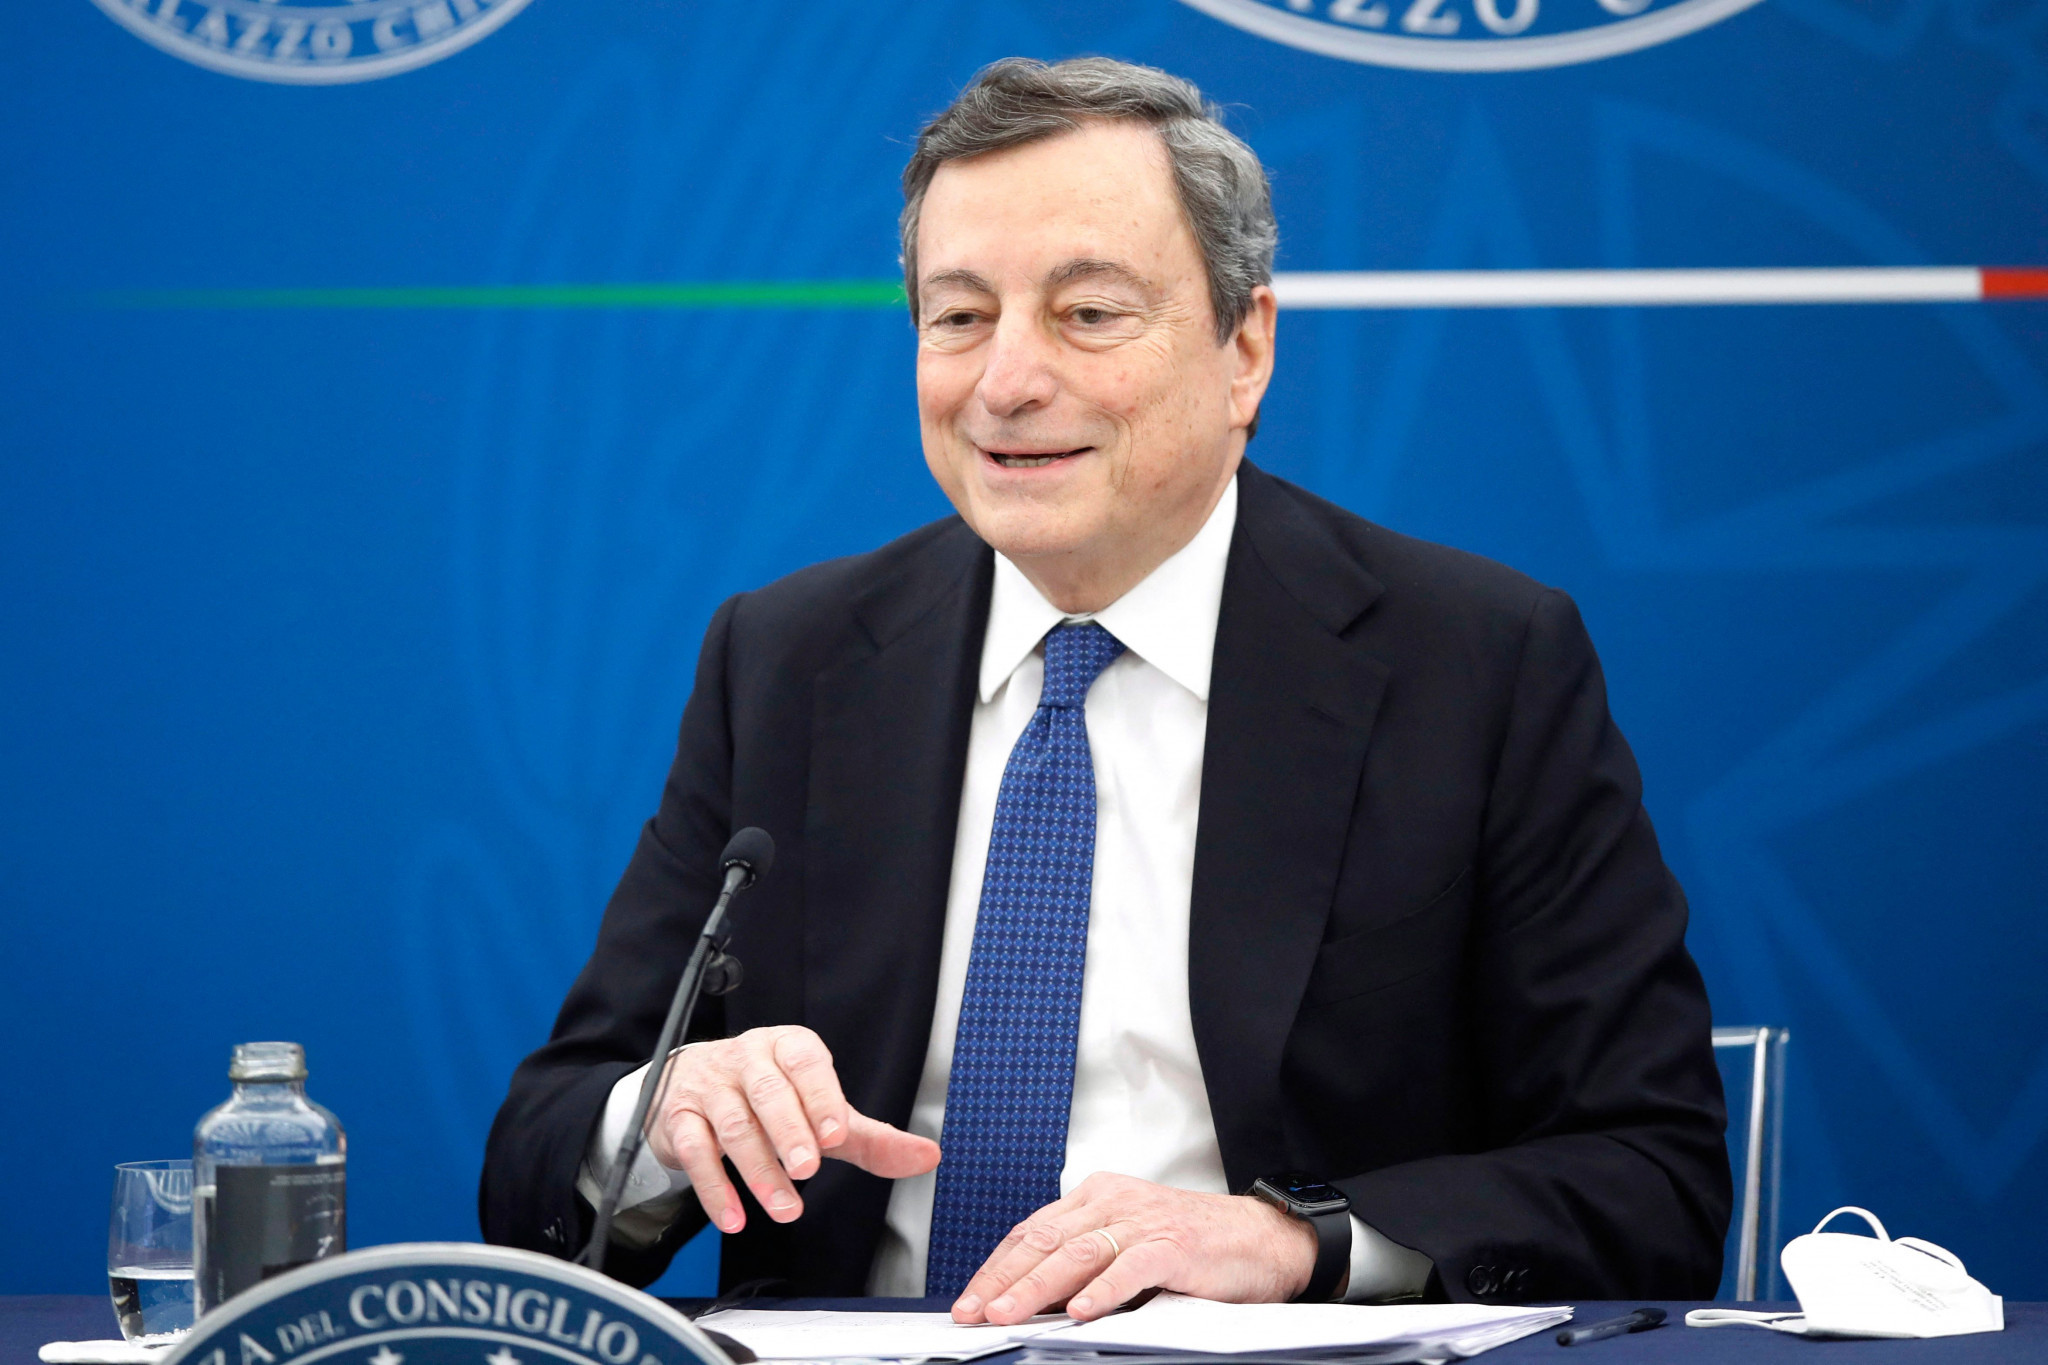 Mario Draghi is currently chairing the G20, having been sworn in as Italian Prime Minister this February ©Getty Images